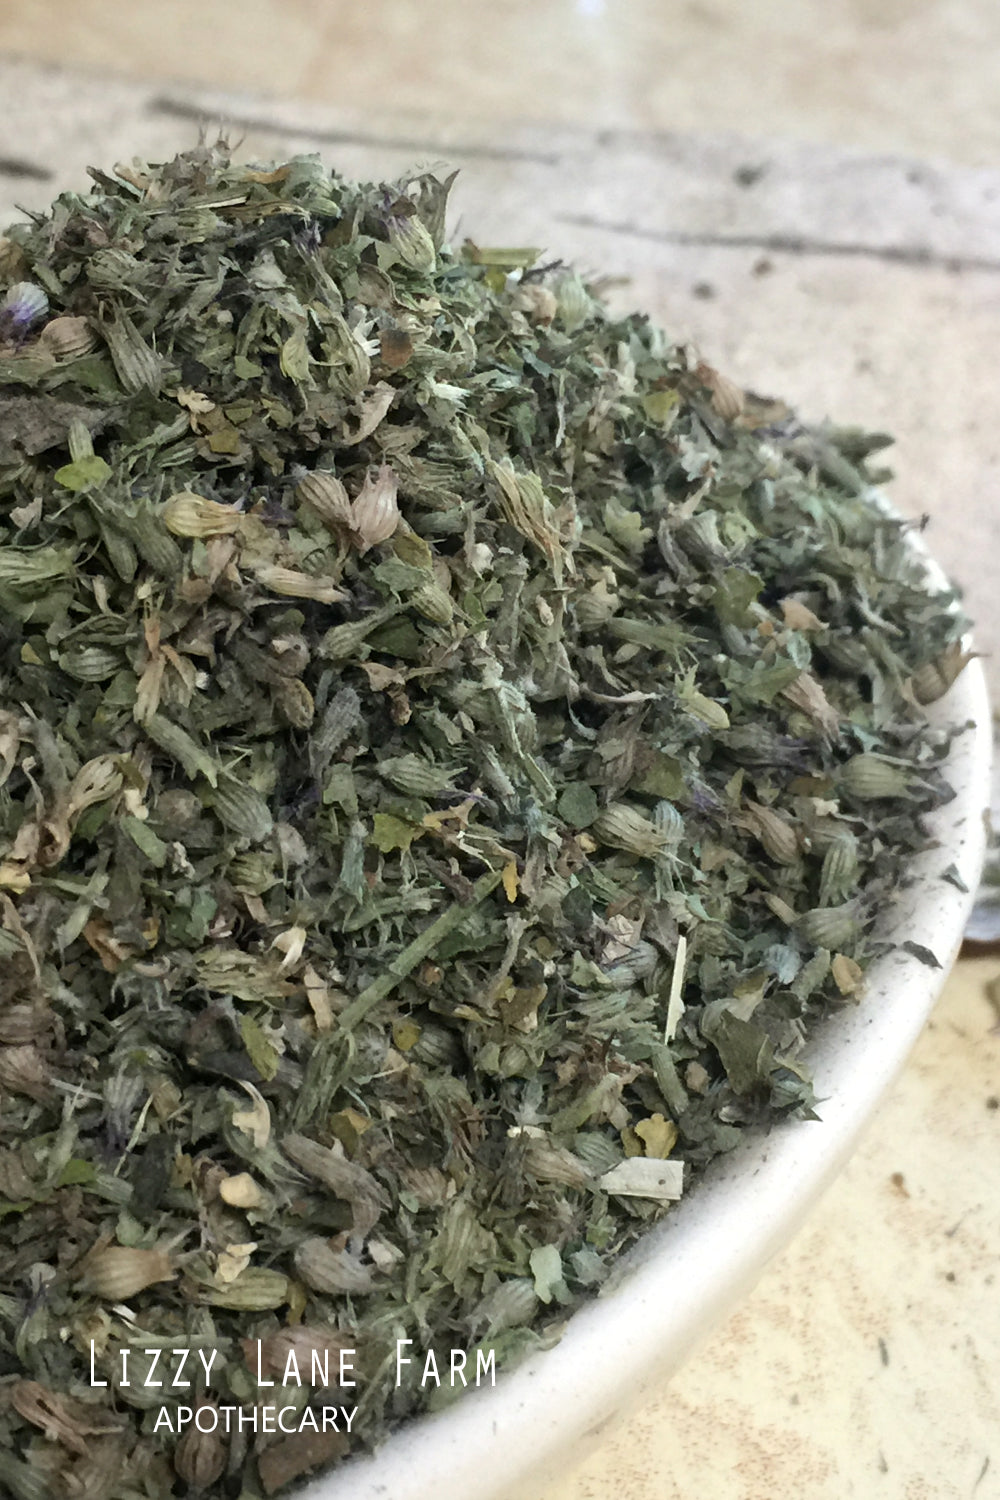 Catnip-Organic Fresh Dried - Lizzy Lane Farm Apothecary